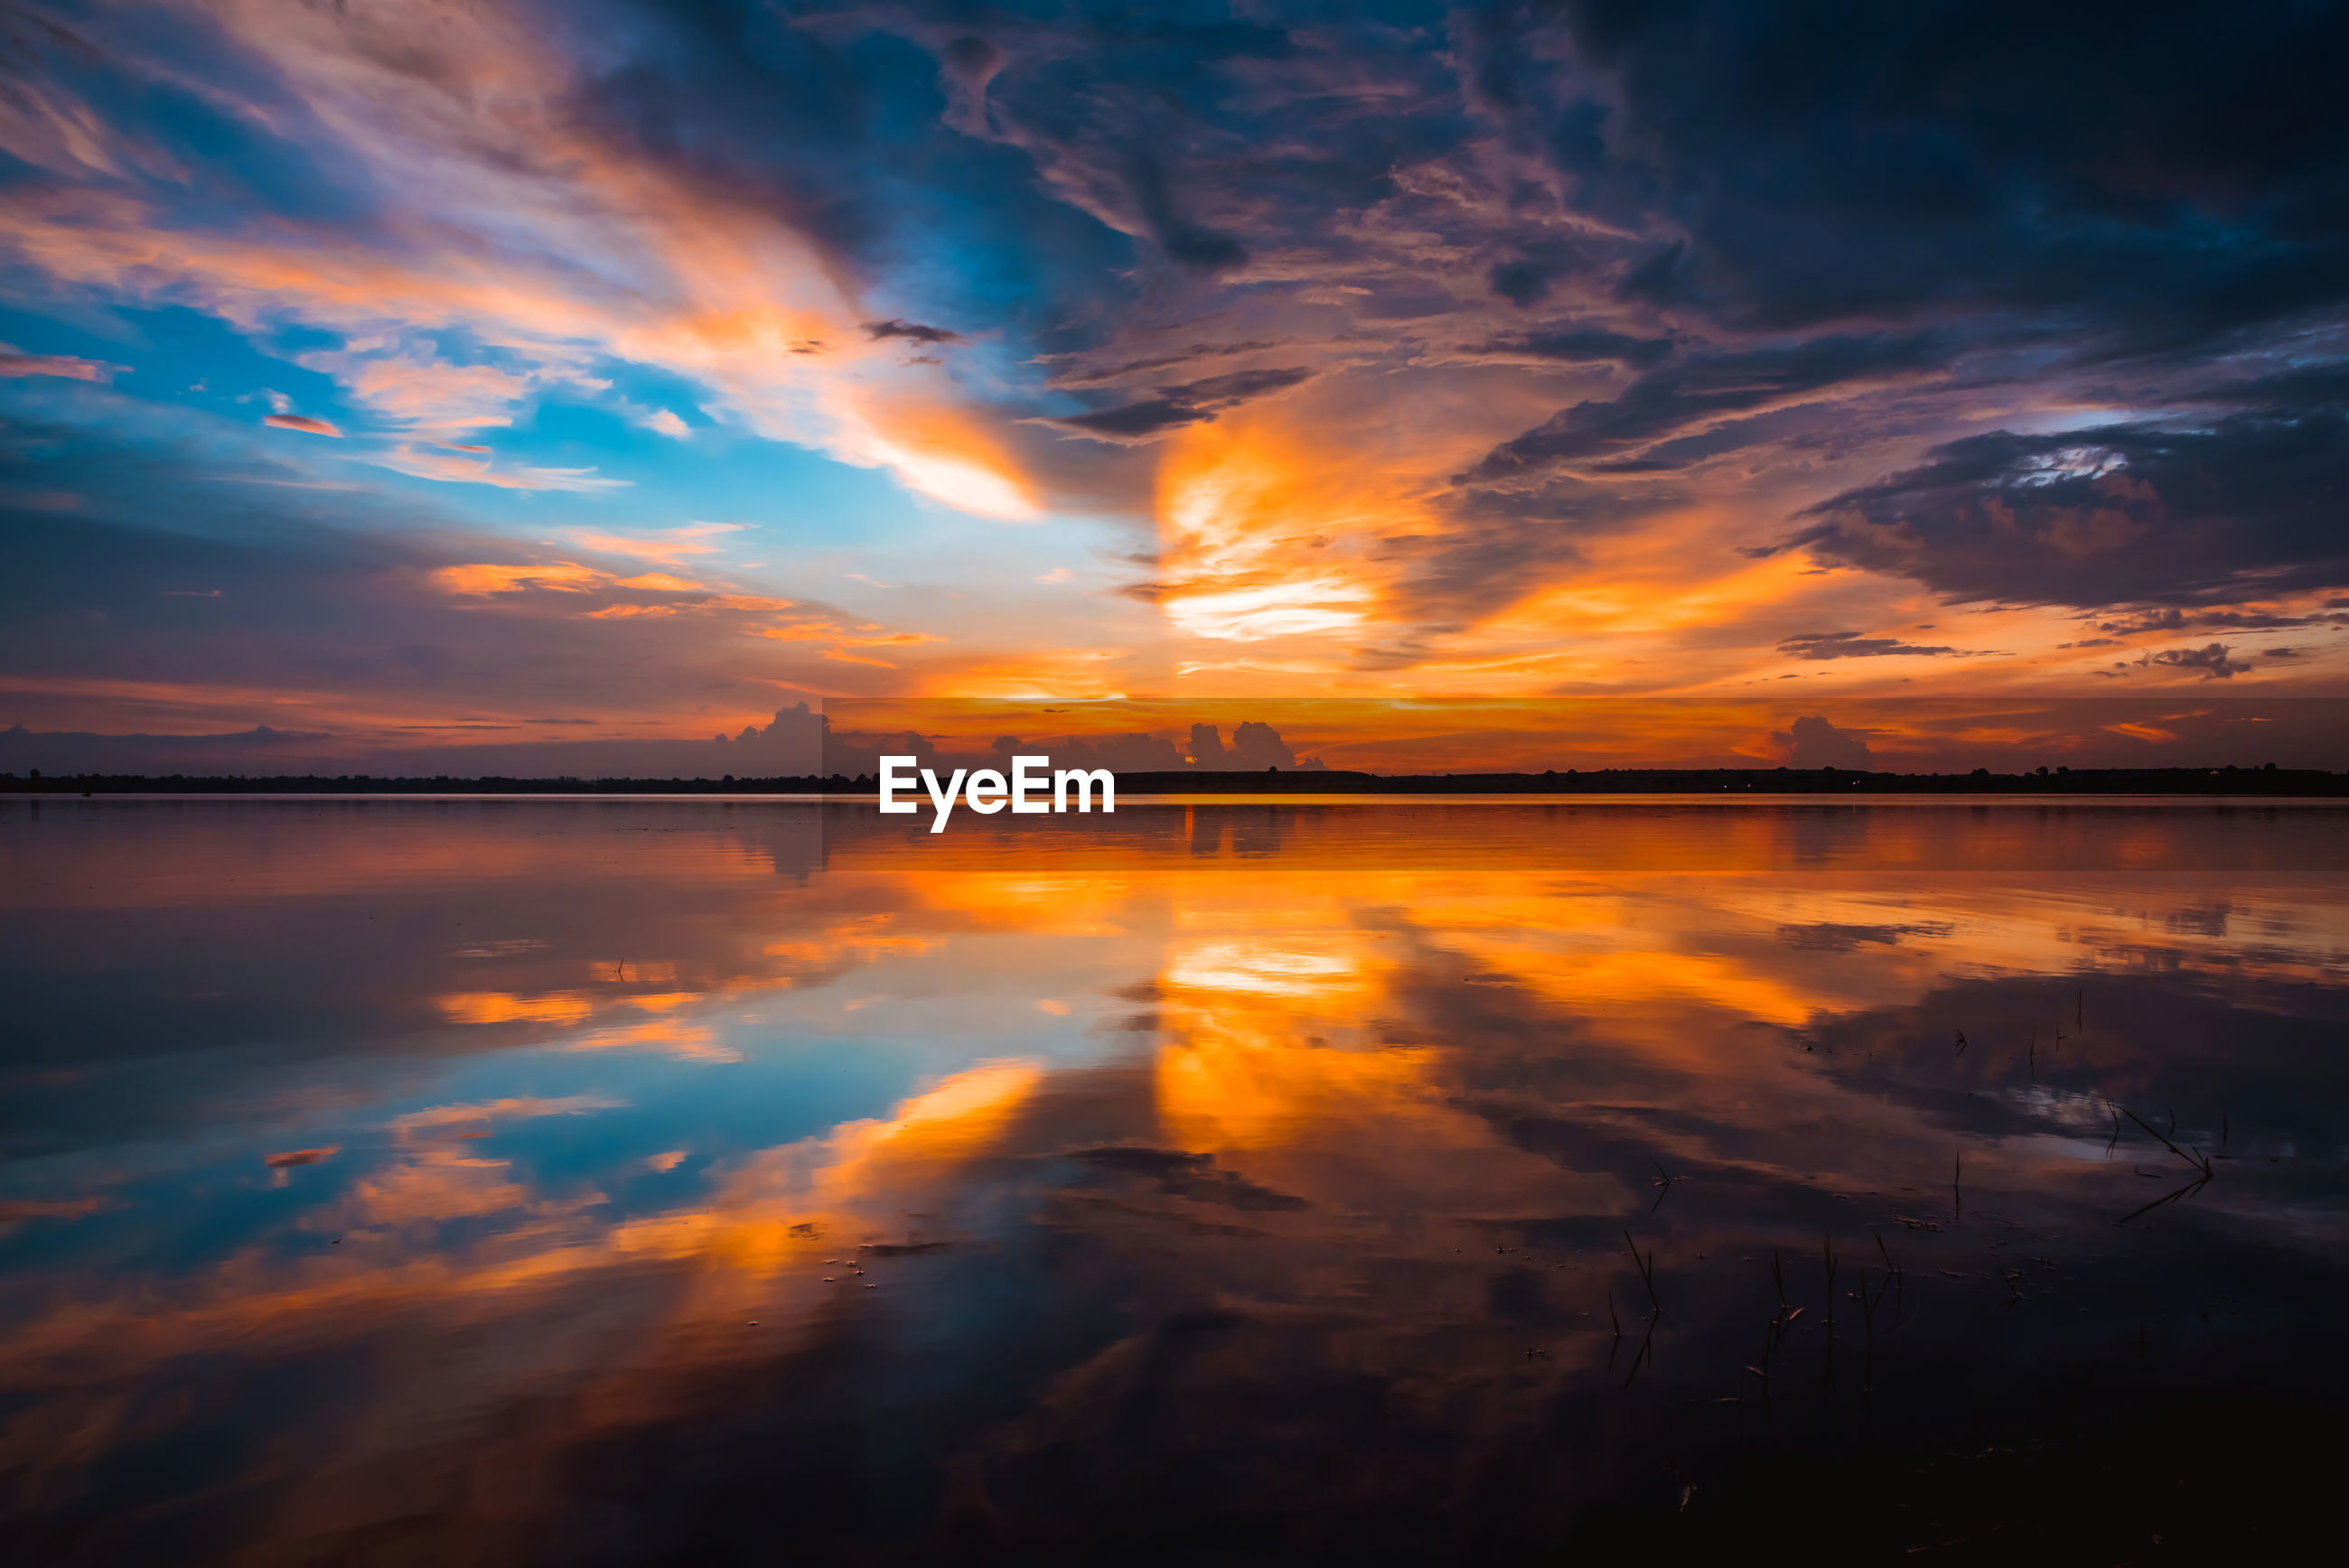 SCENIC VIEW OF SUNSET OVER WATER